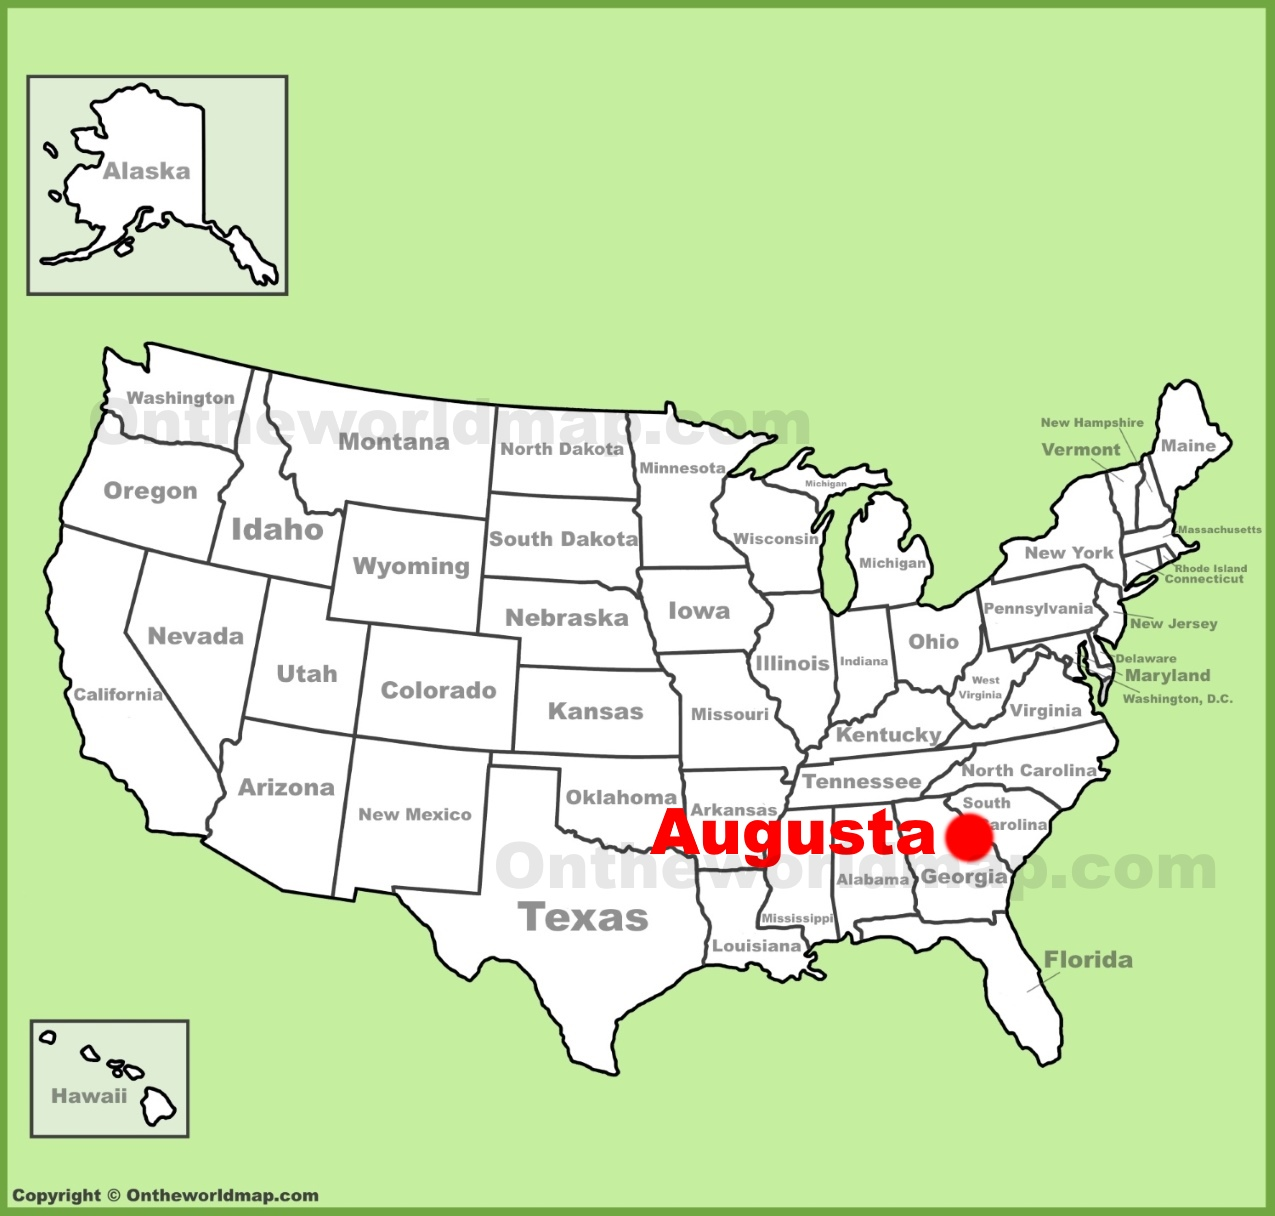 Augusta (Georgia) location on the U.S. Map